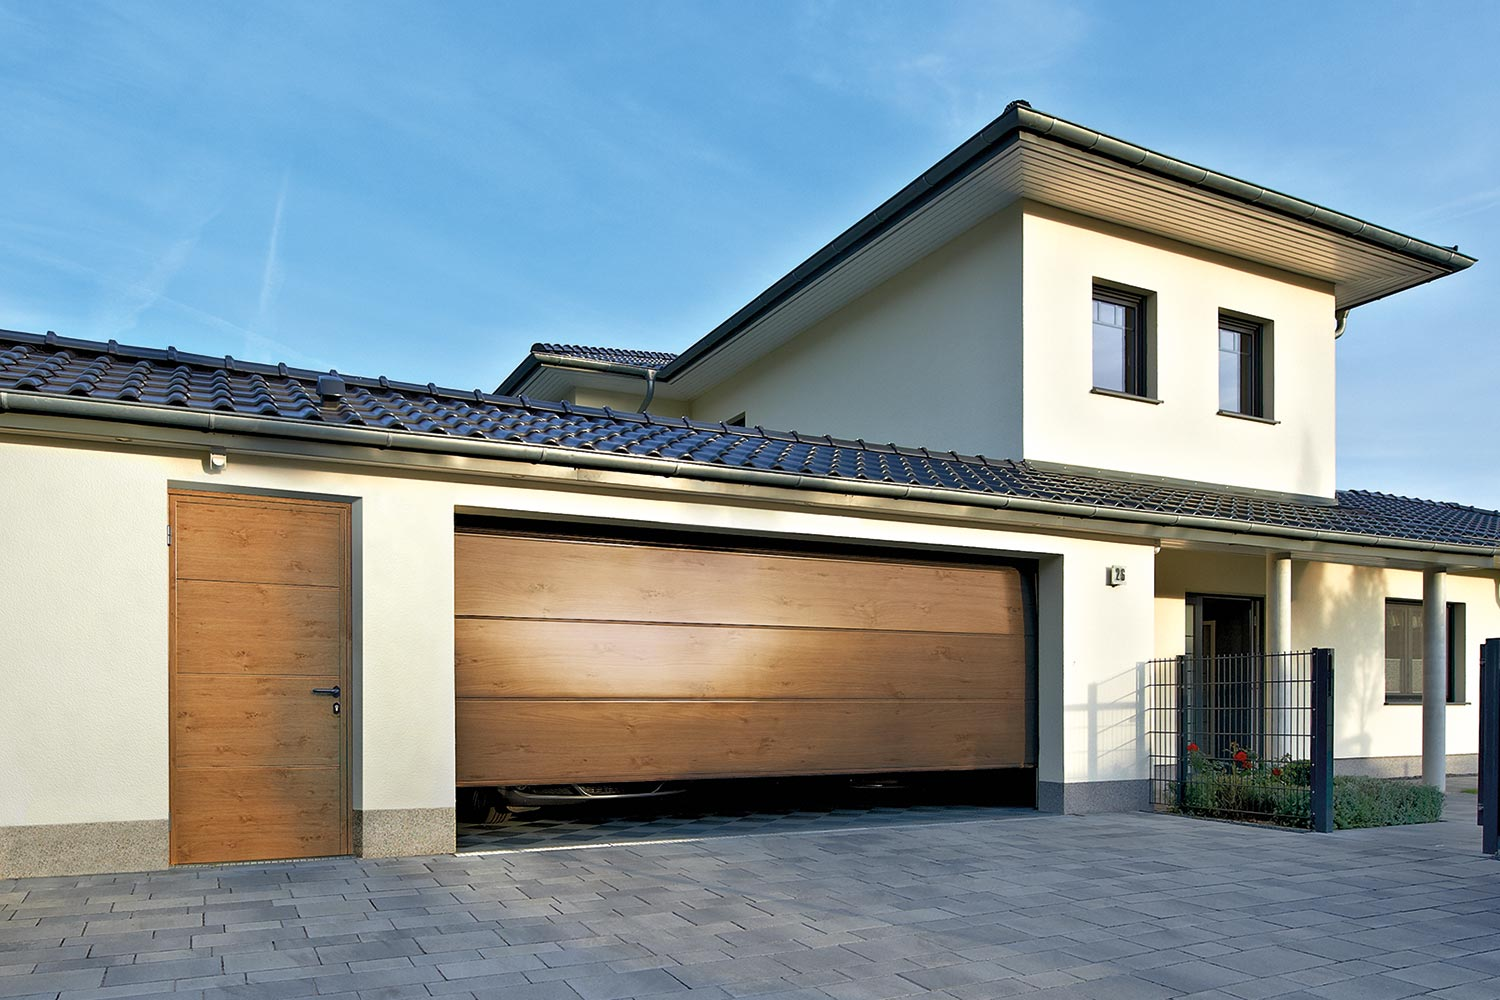 Service Specialists for garage doors, gates, automatic openers and remotes - Gallery 13